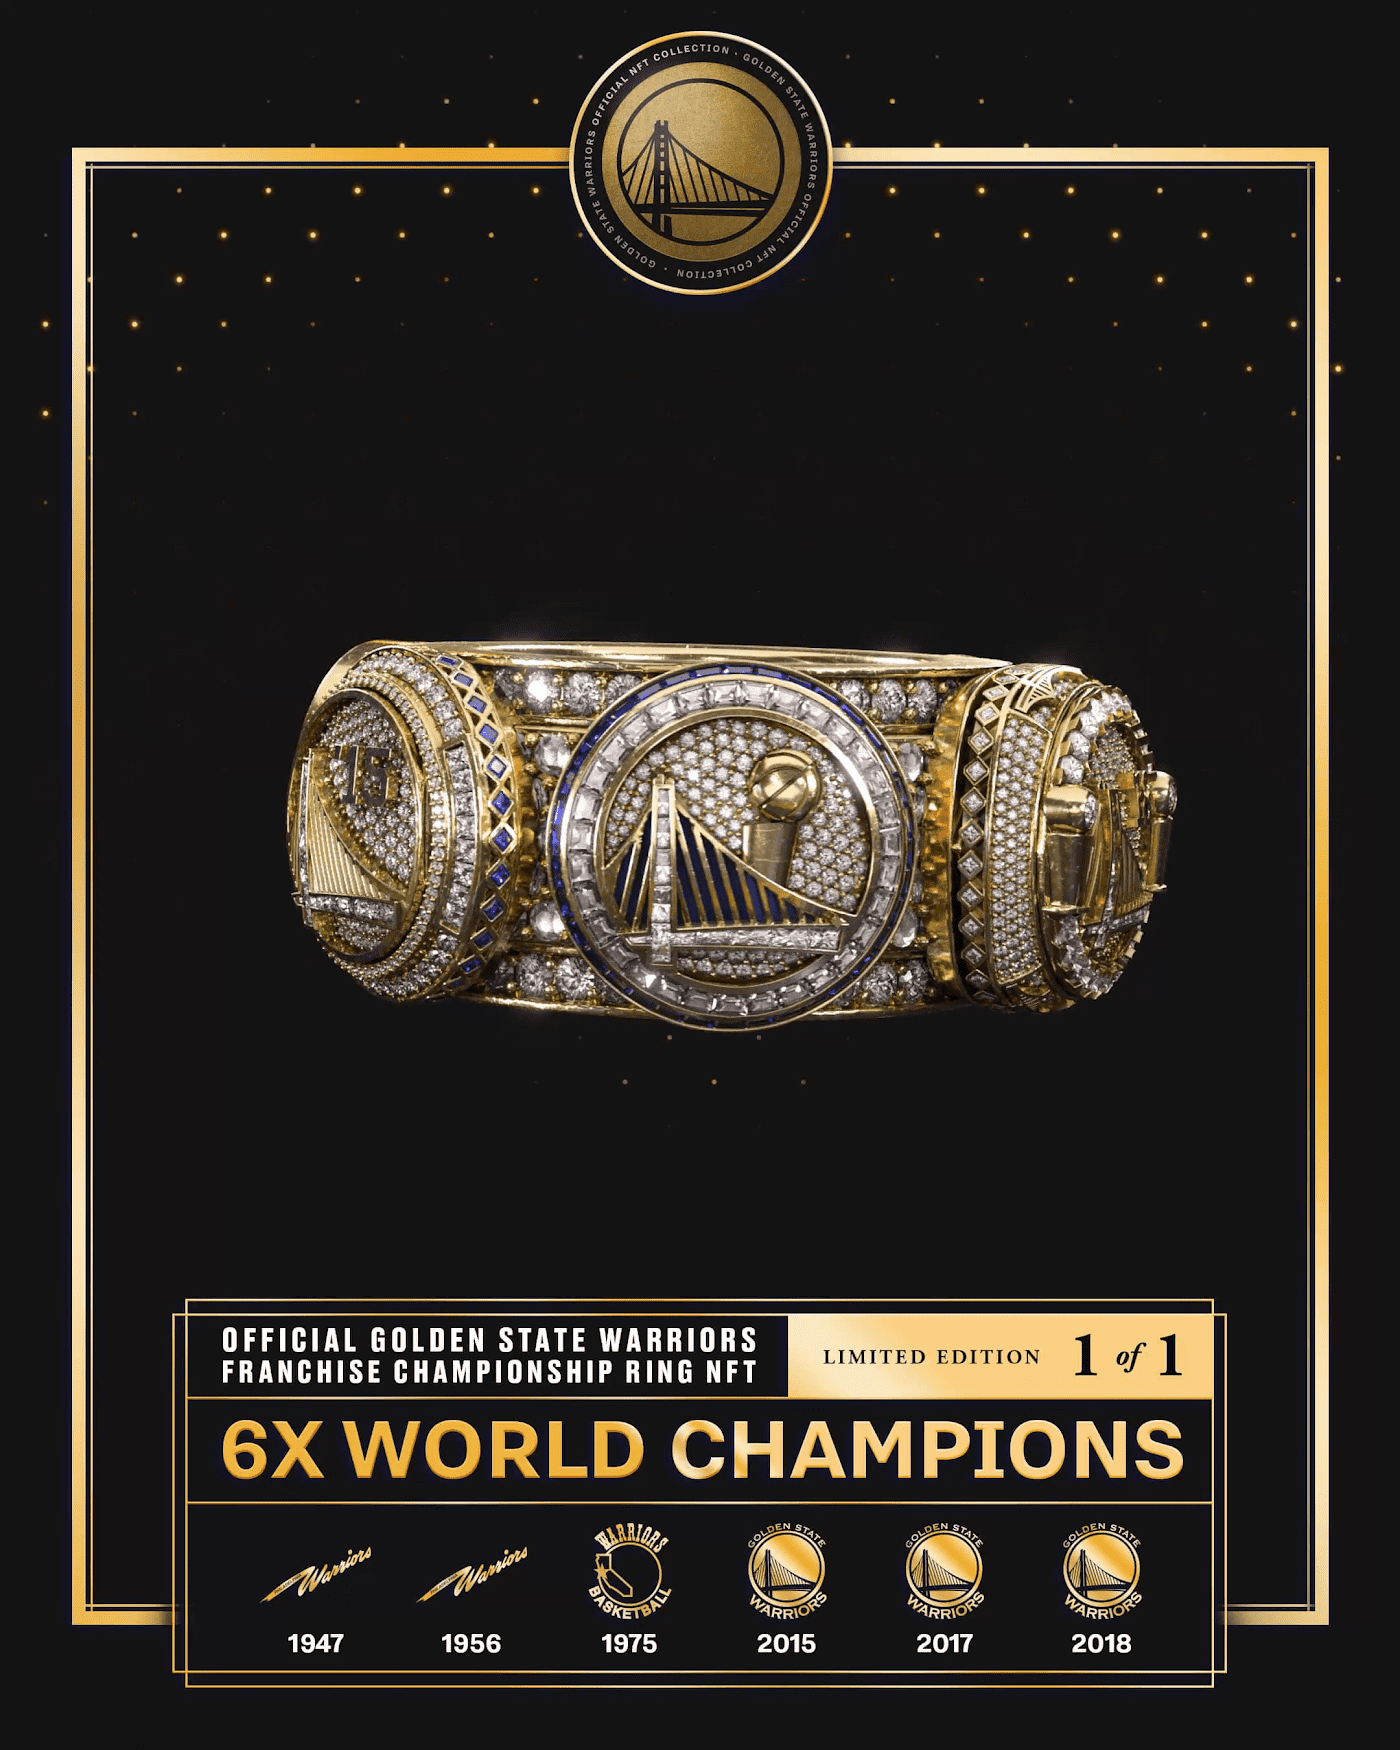 1-of-1 Warriors 6x World Champion Ring NFT & Physical Ring by Golden State Warriors Legacy Collection